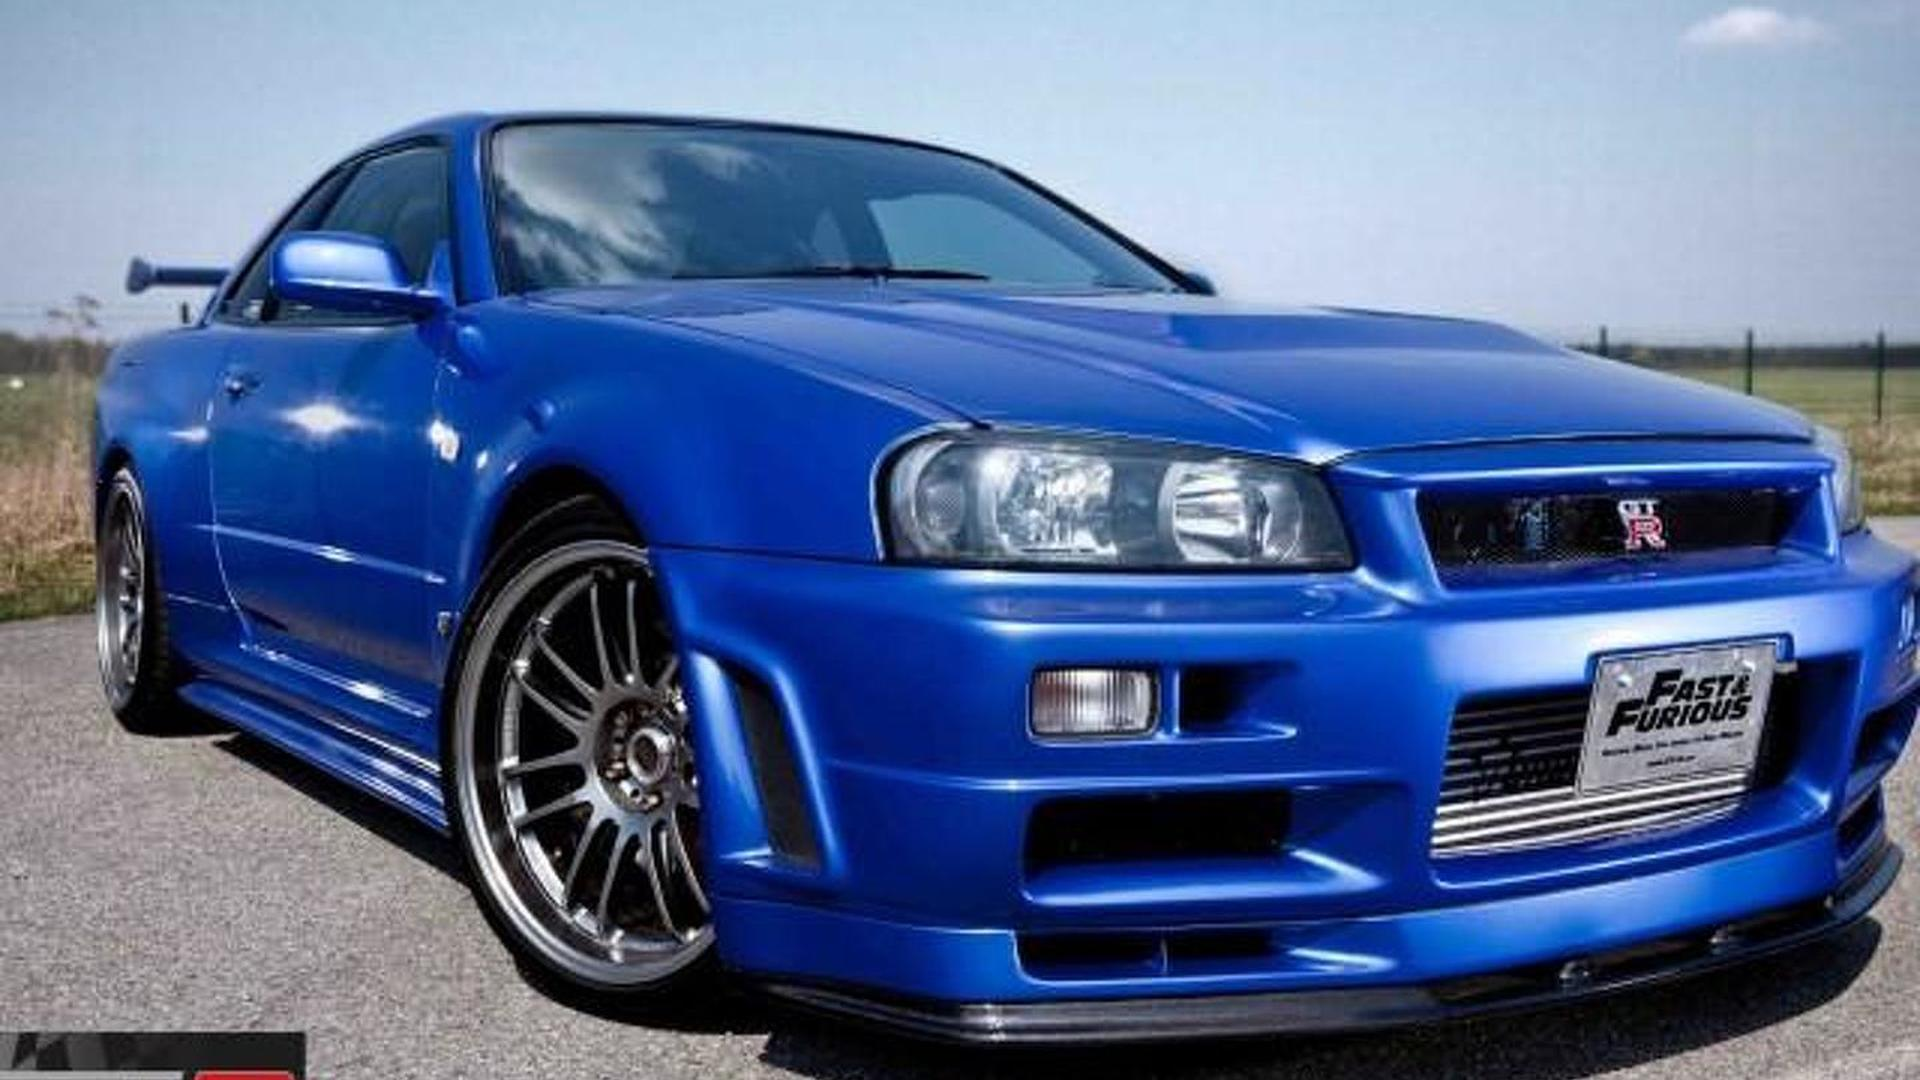 Nissan Skyline Gt R R34 From Fast Furious 4 On Sale